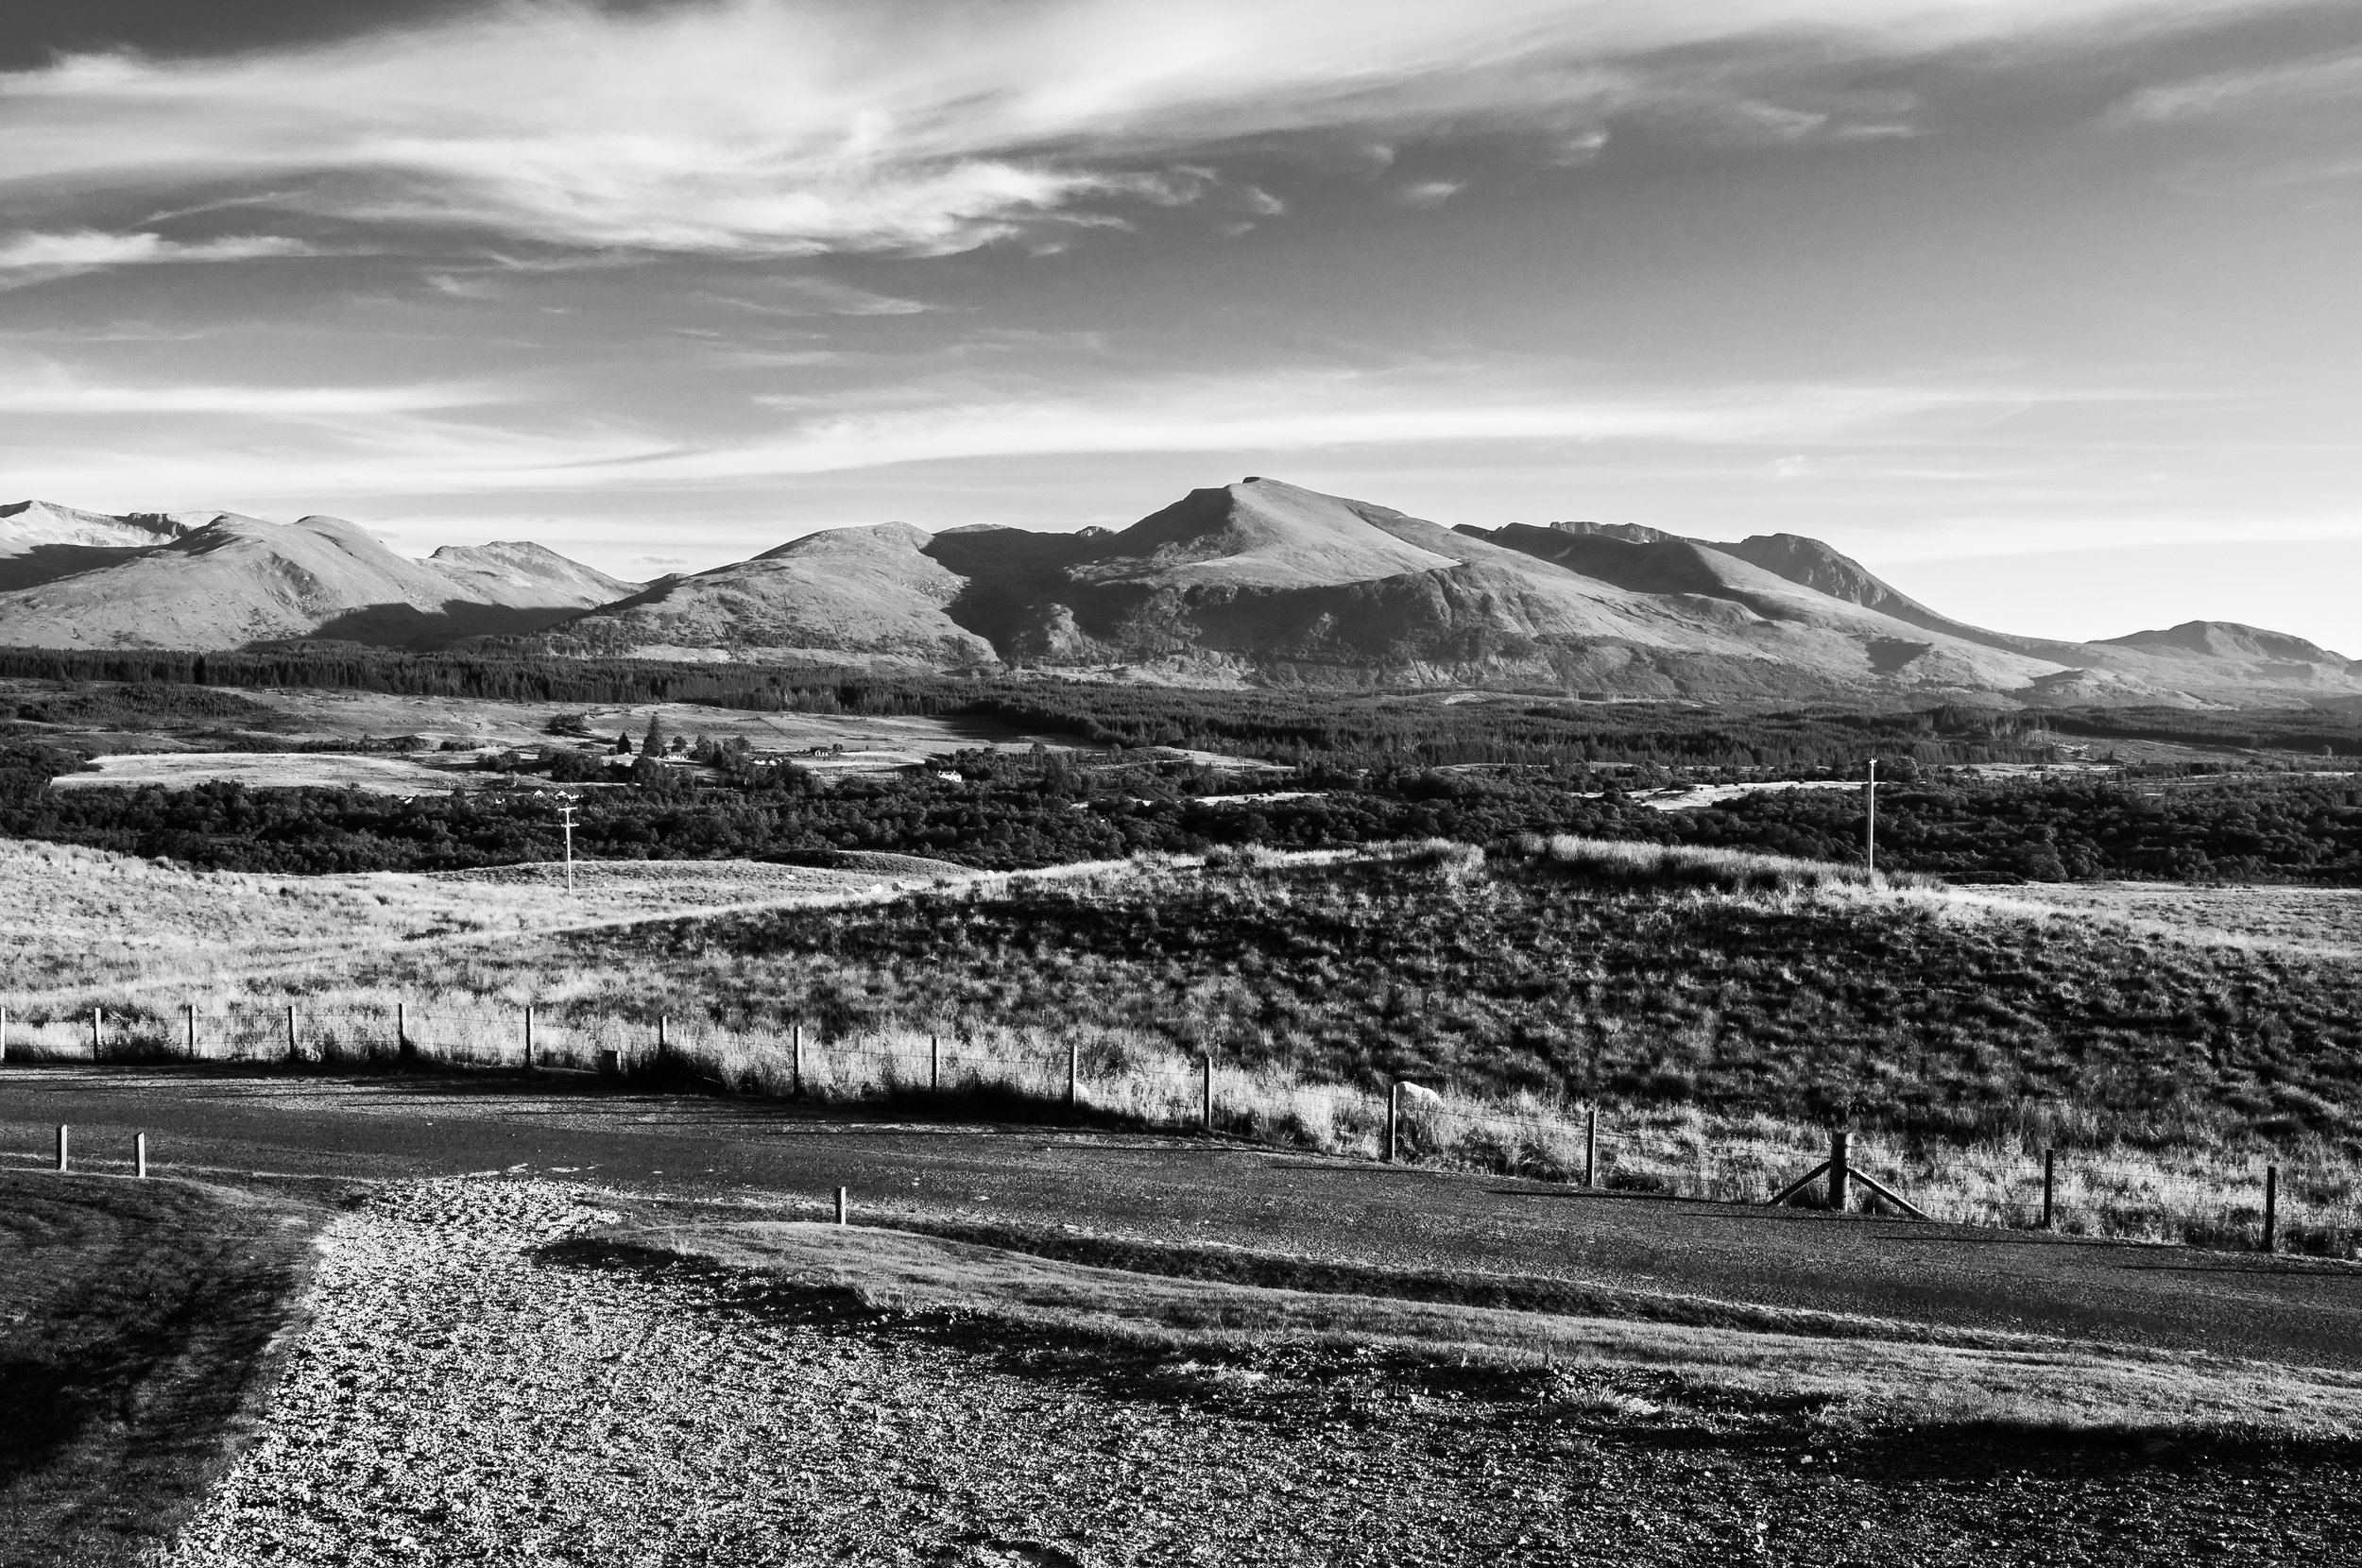 A view of the Nevis range from the Royal Marines Commando Memorial in the Highlands of Scotland.